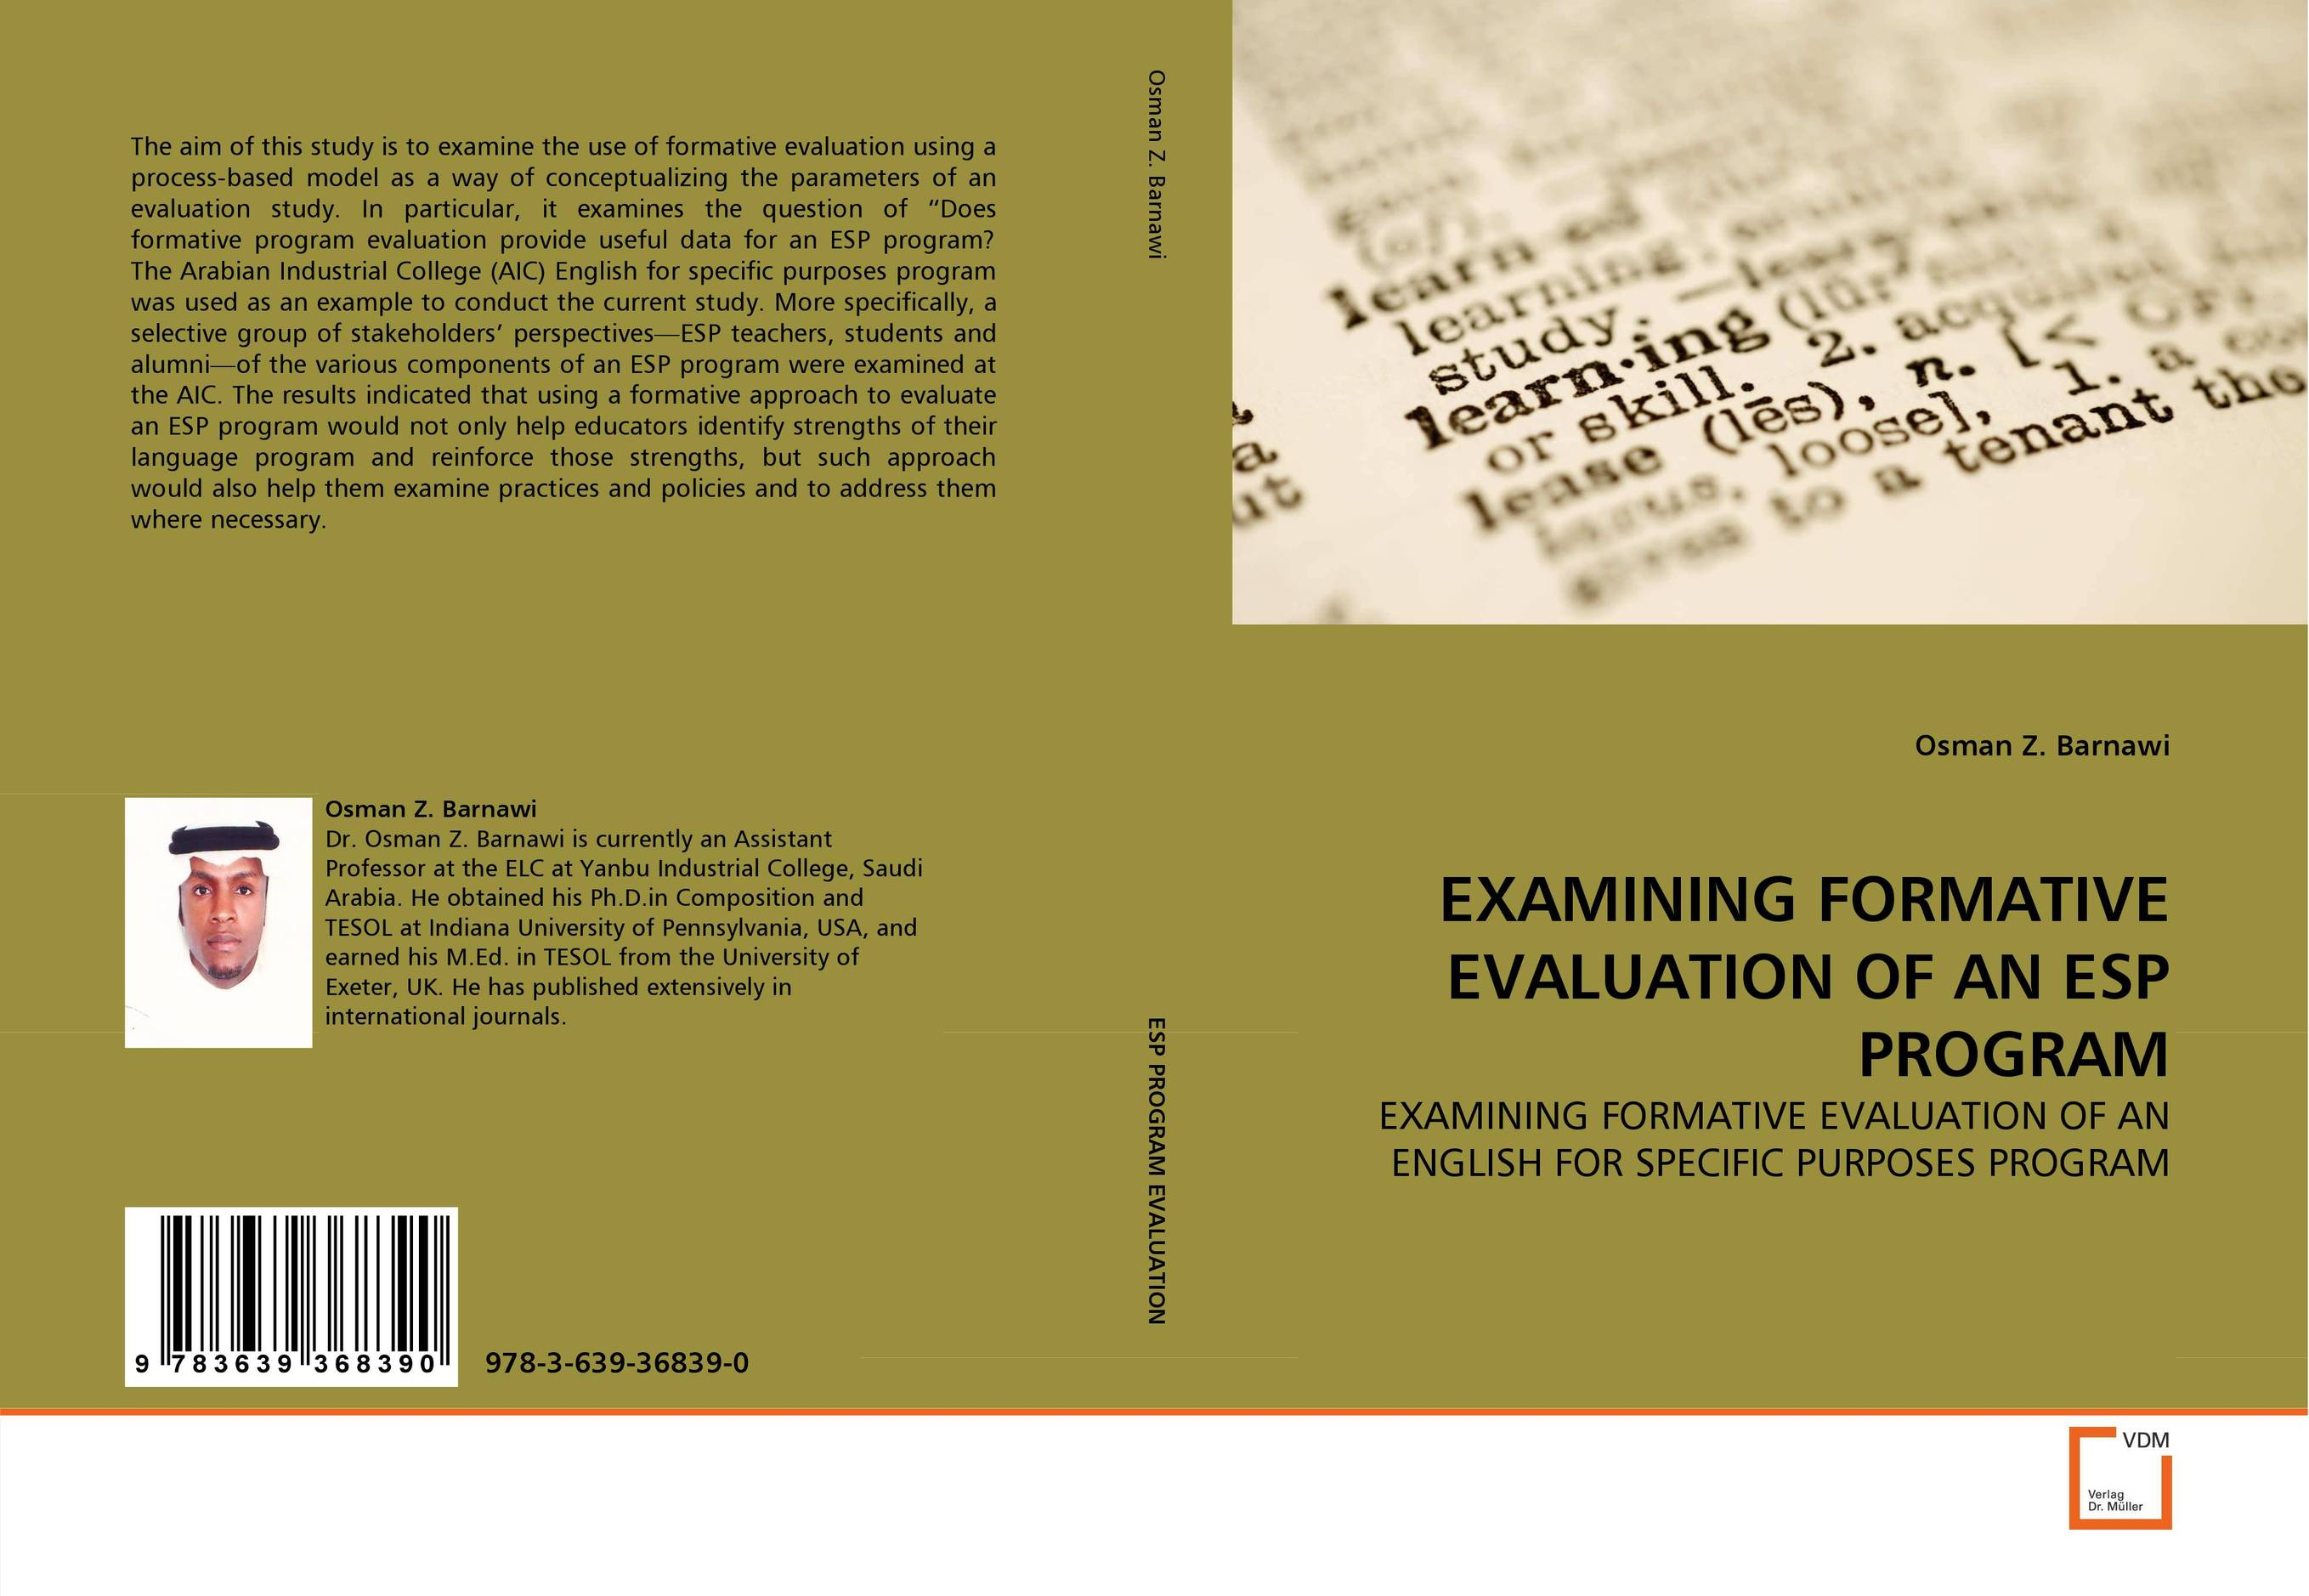 EXAMINING FORMATIVE EVALUATION OF AN ESP PROGRAM костюмы cherubino костюм